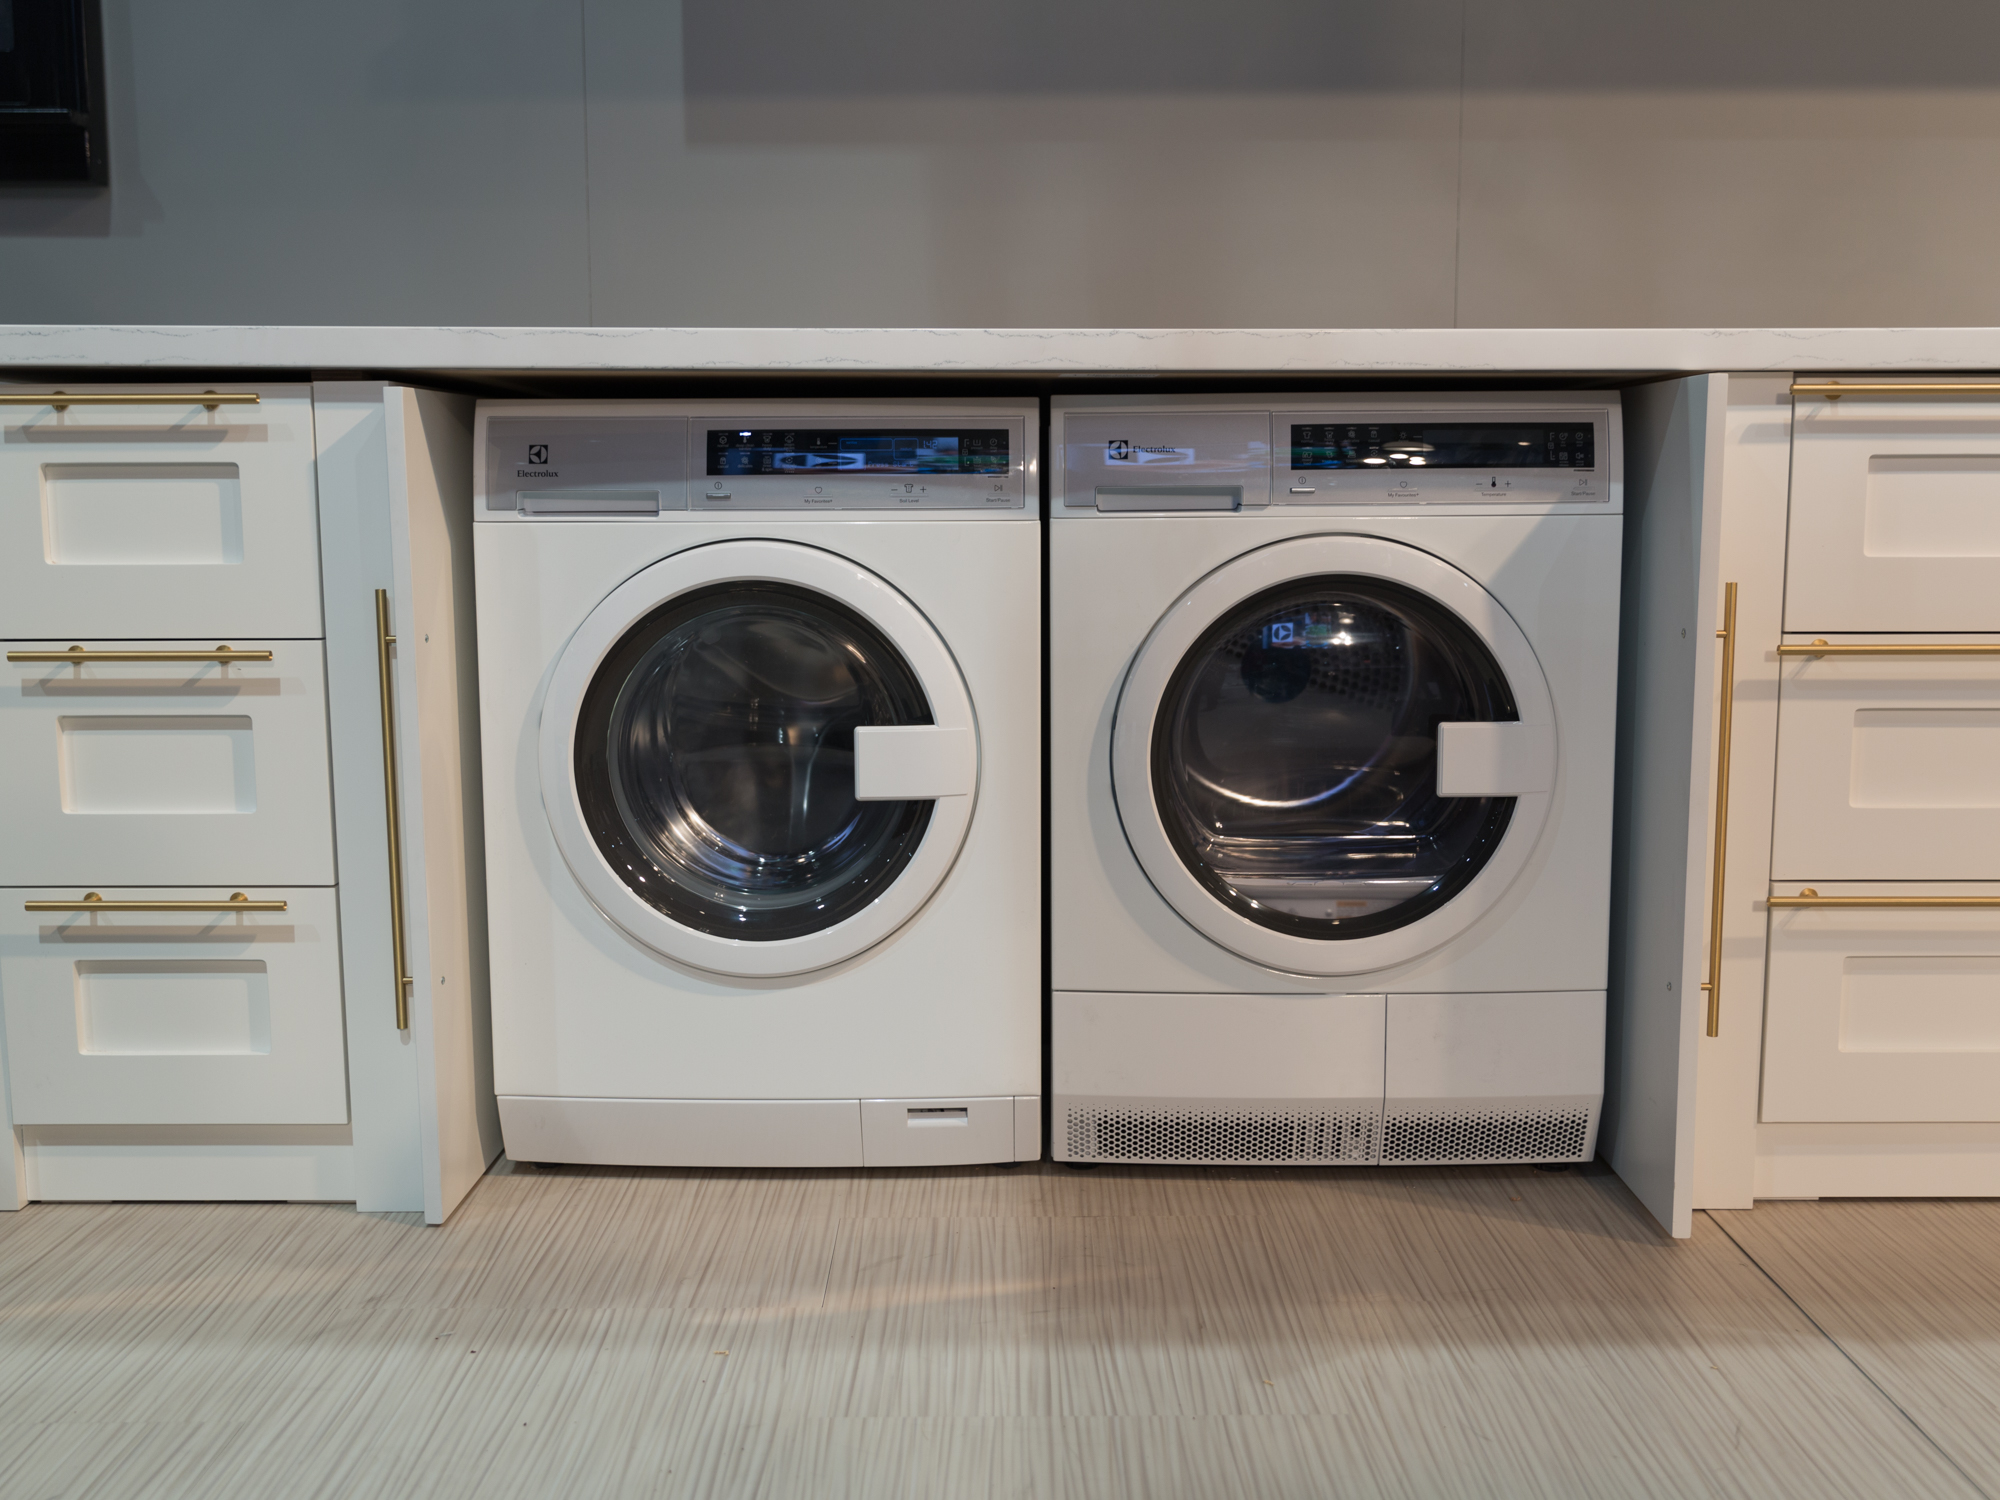 electrolux-compat-washer-and-dryer-product-photos-4.jpg